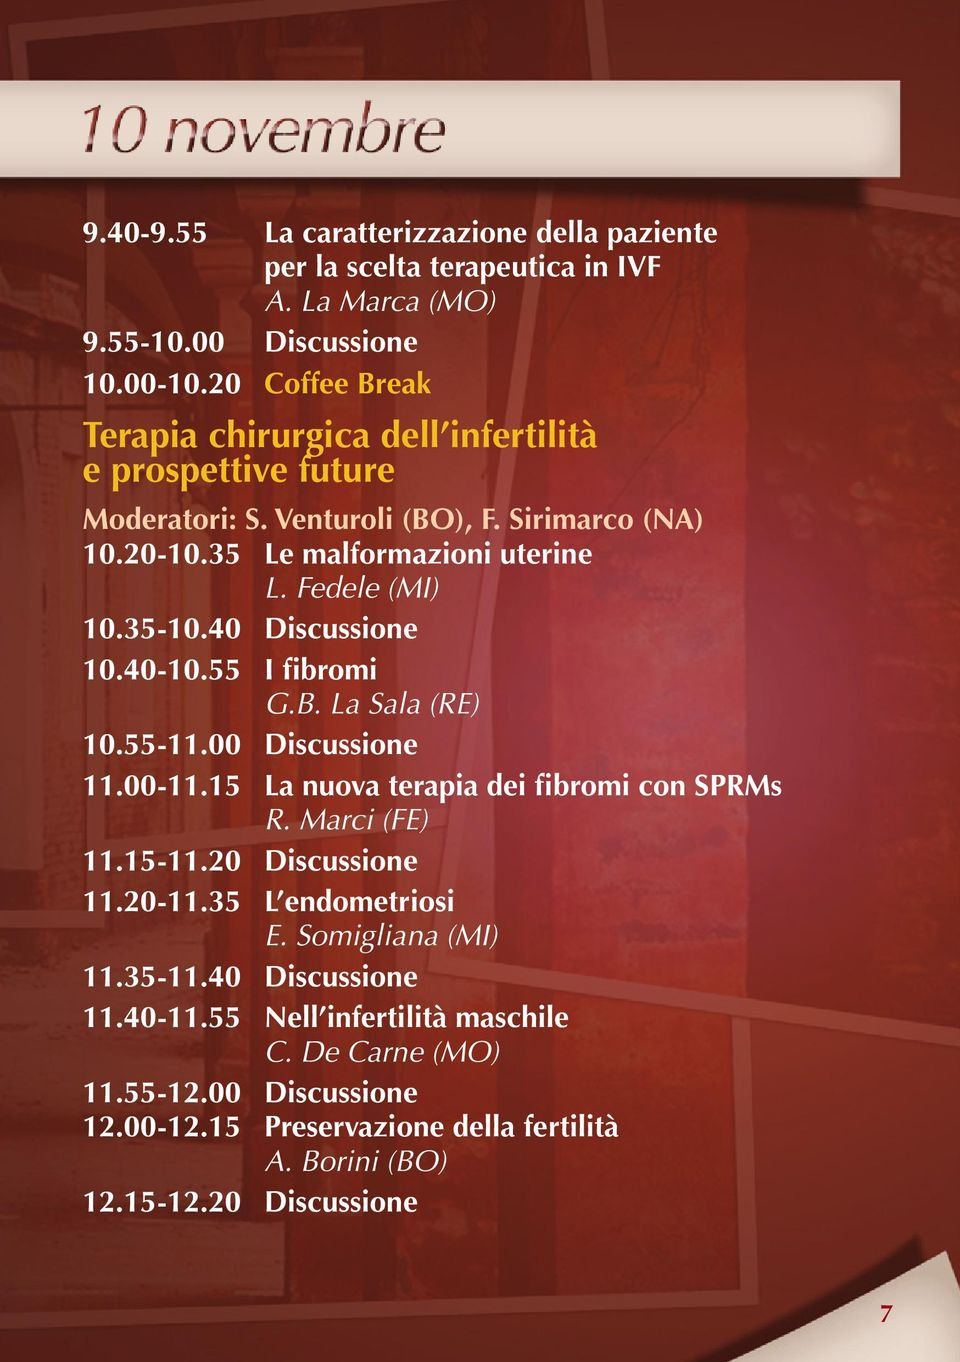 35-10.40 Discussione 10.40-10.55 I fibromi G.B. La Sala (RE) 10.55-11.00 Discussione 11.00-11.15 La nuova terapia dei fibromi con SPRMs R. Marci (FE) 11.15-11.20 Discussione 11.